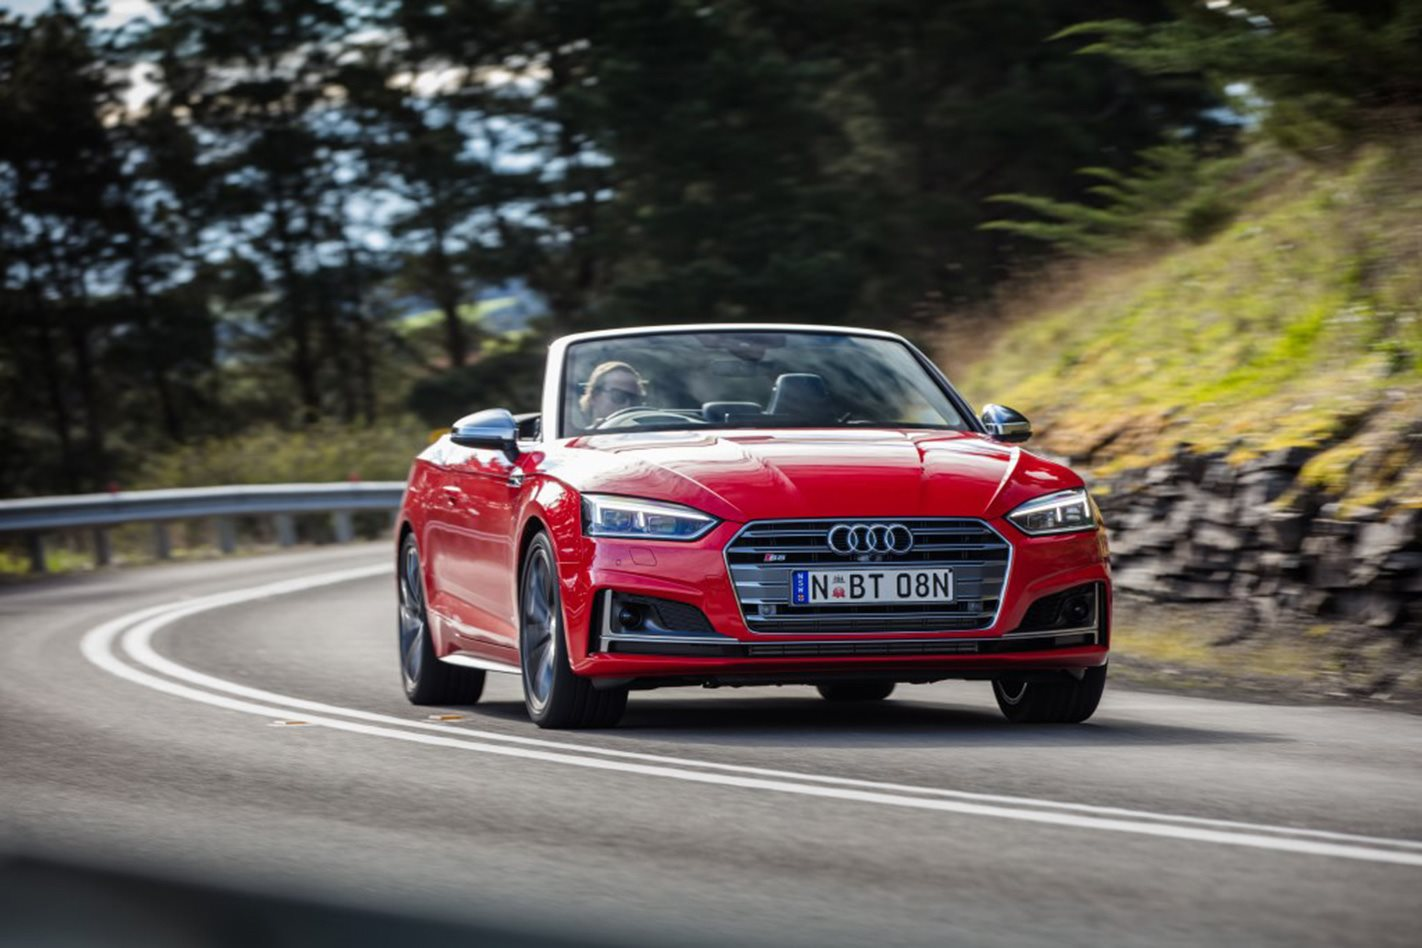 2017 Audi S5 Cabriolet front